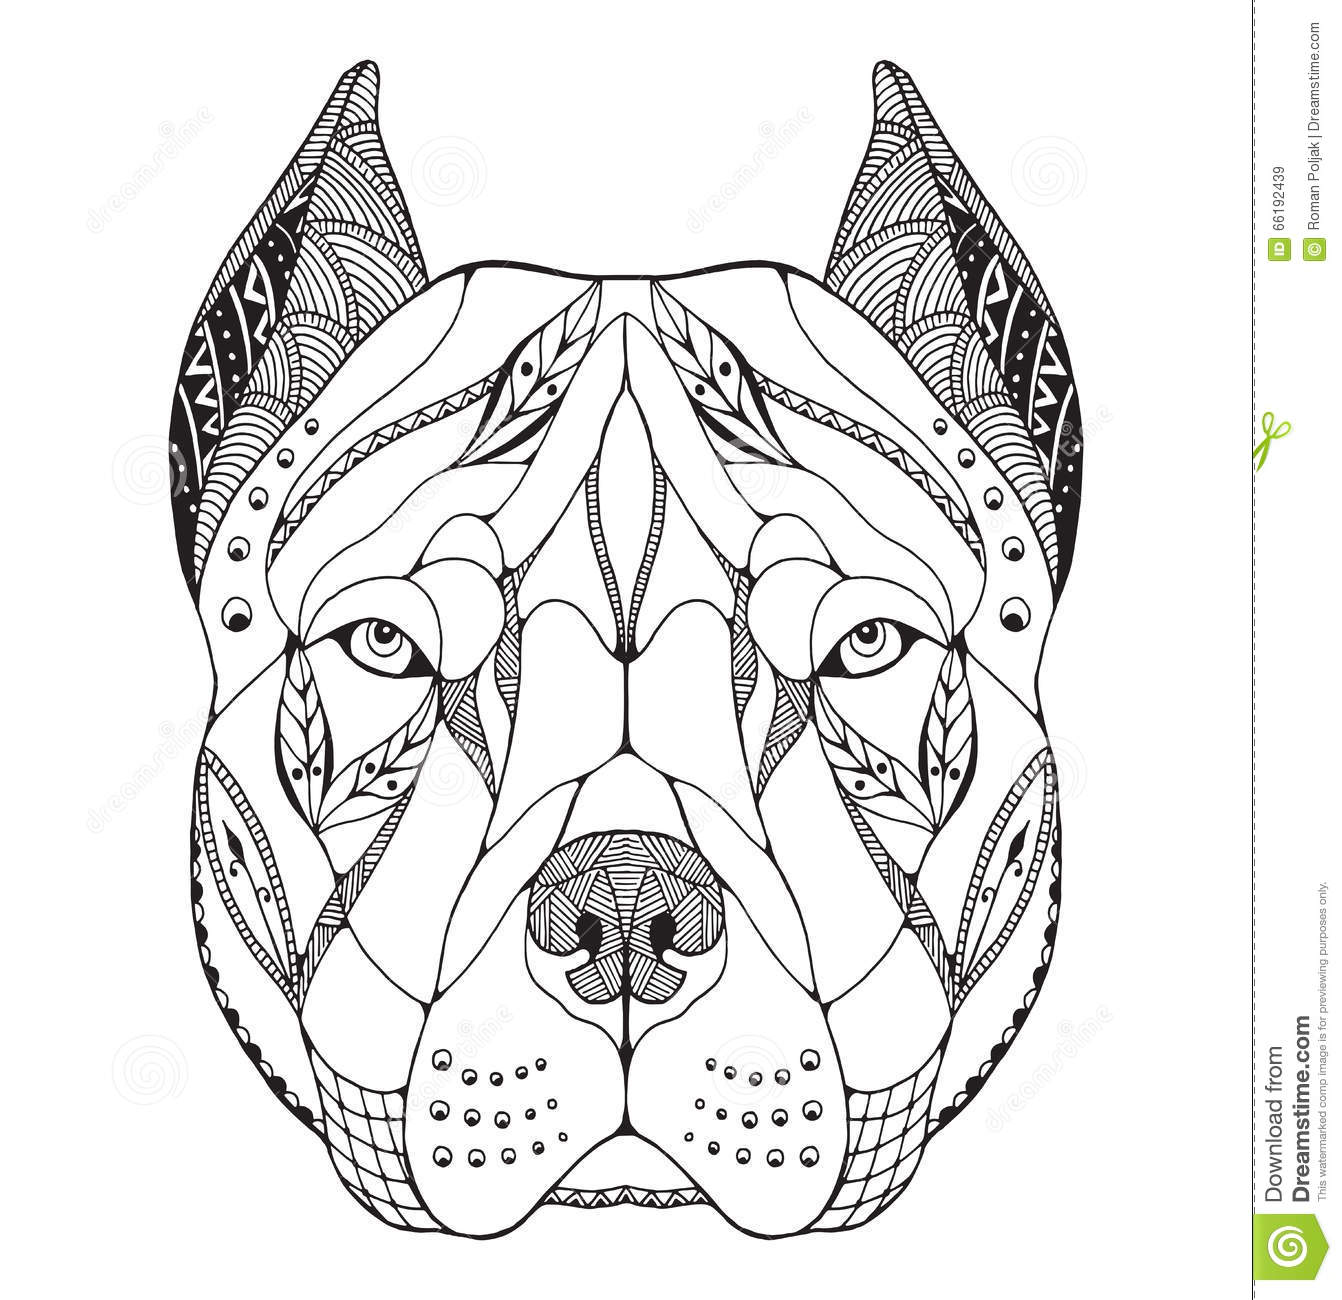 El Zentangle De La Cabeza Del Terrier De Pitbull Estilizó, Vector ...